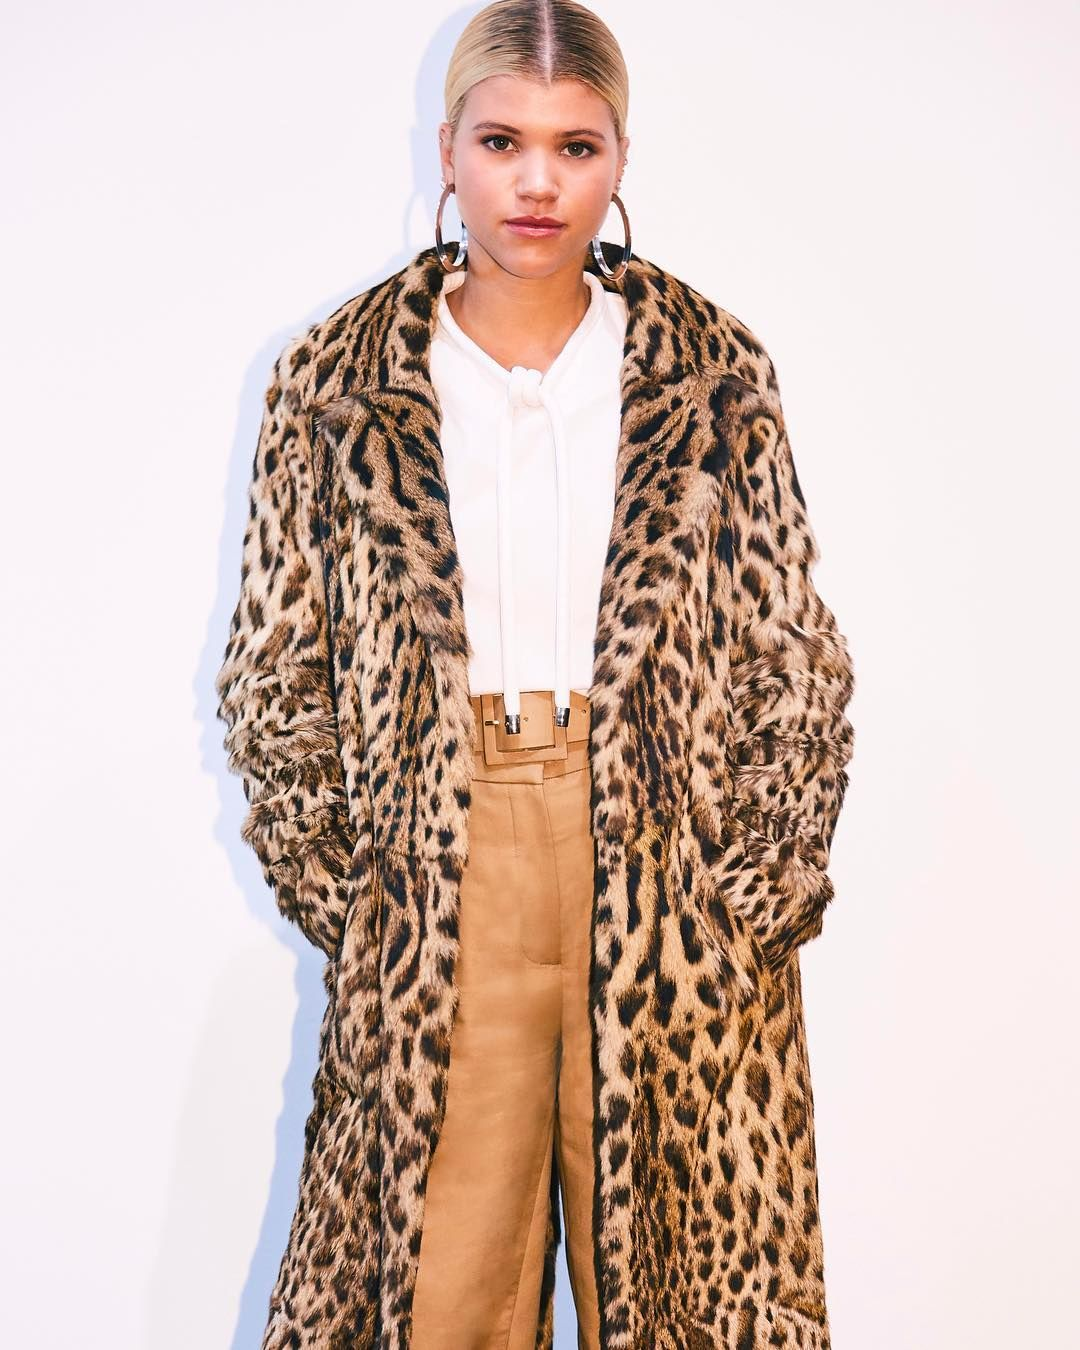 sofia richie caught backstage at our odlrspring18 show wearing an oscardelarenta coat over